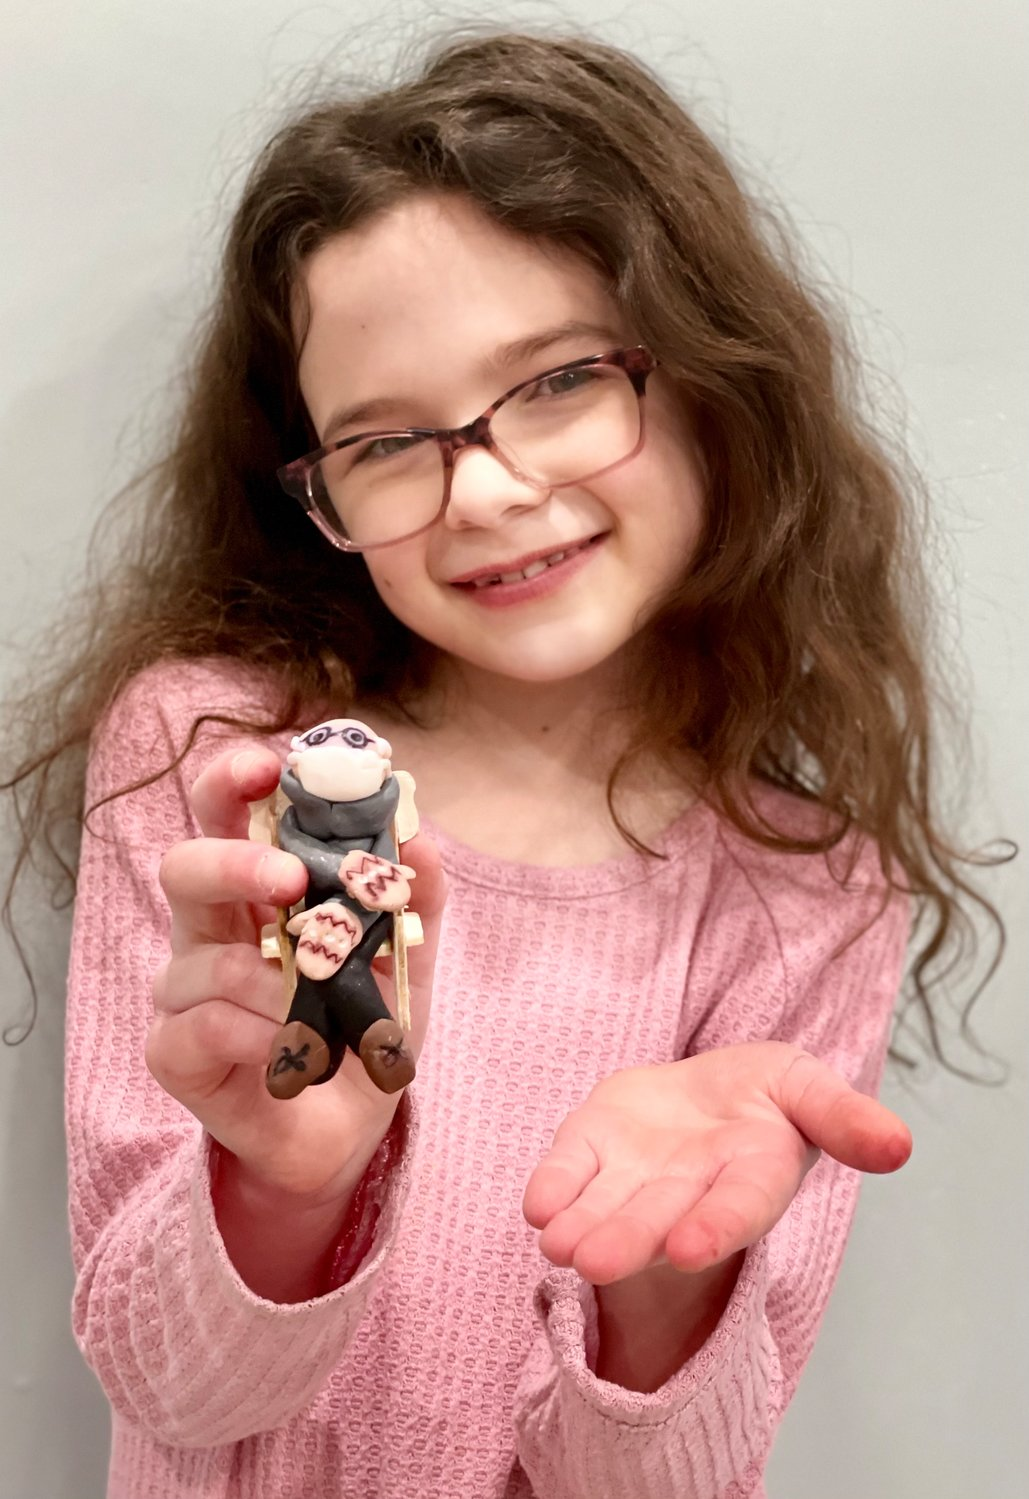 Julianna Tand, 9, of Merrick, held her sculpture of Vermont U.S. Sen. Bernie Sanders, which helped her raise more than $3,000 for the Ronald McDonald House Charities New York Metro.